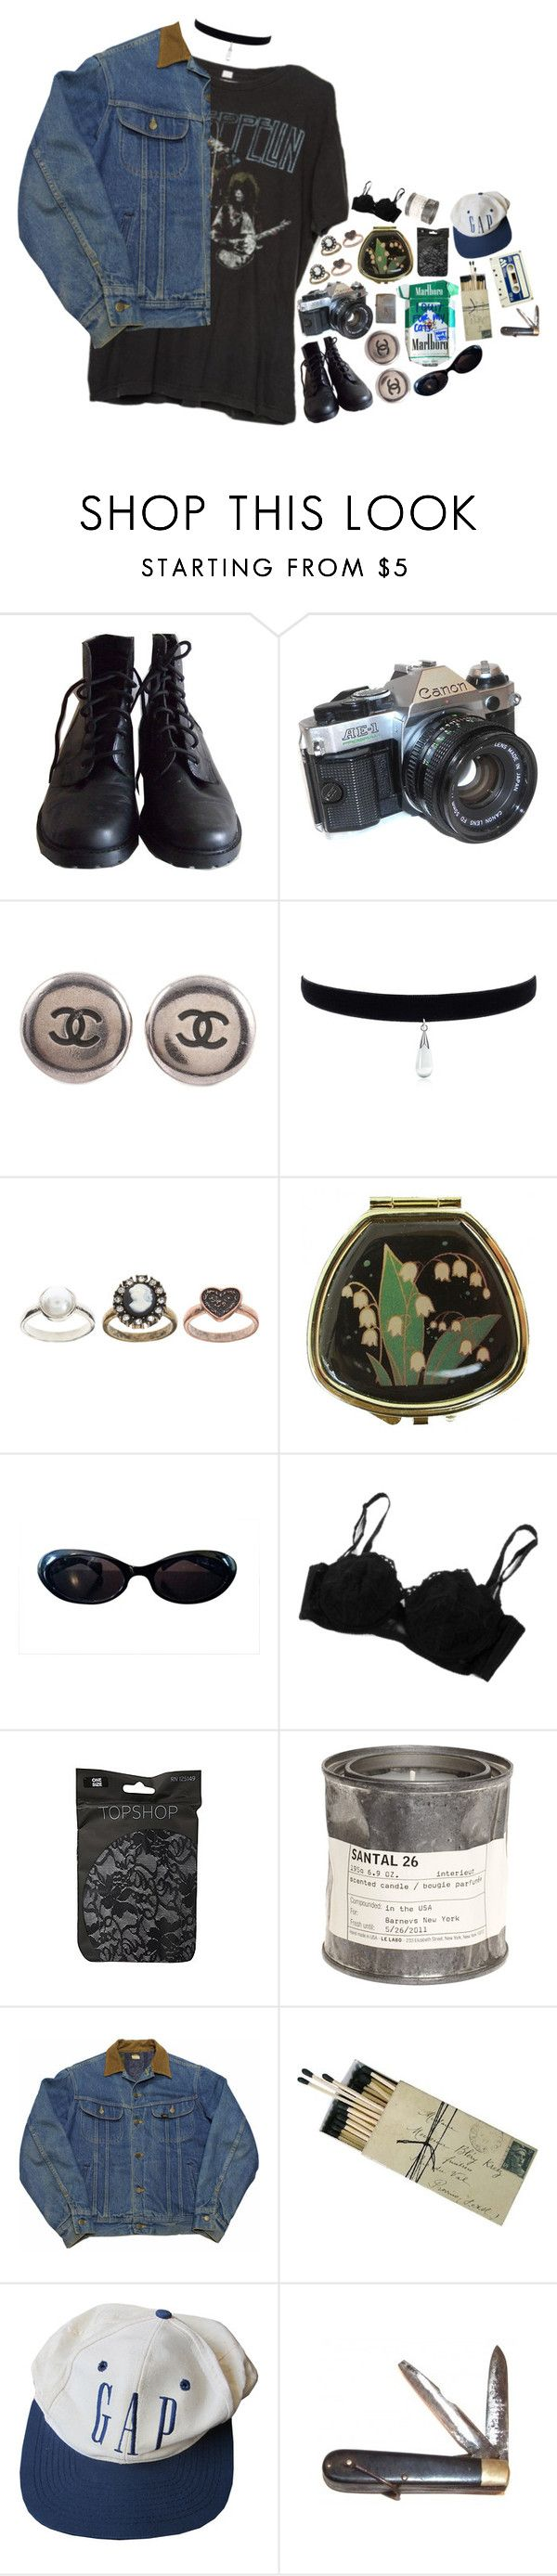 """""""Vintage Aesthetic Part 3"""" by tiffanyelinor ❤ liked on Polyvore featuring Brandy Melville, American Eagle Outfitters, Chanel, ASOS, Andrea Garland, Gucci, Topshop, Le Labo, Retrò and Zippo"""